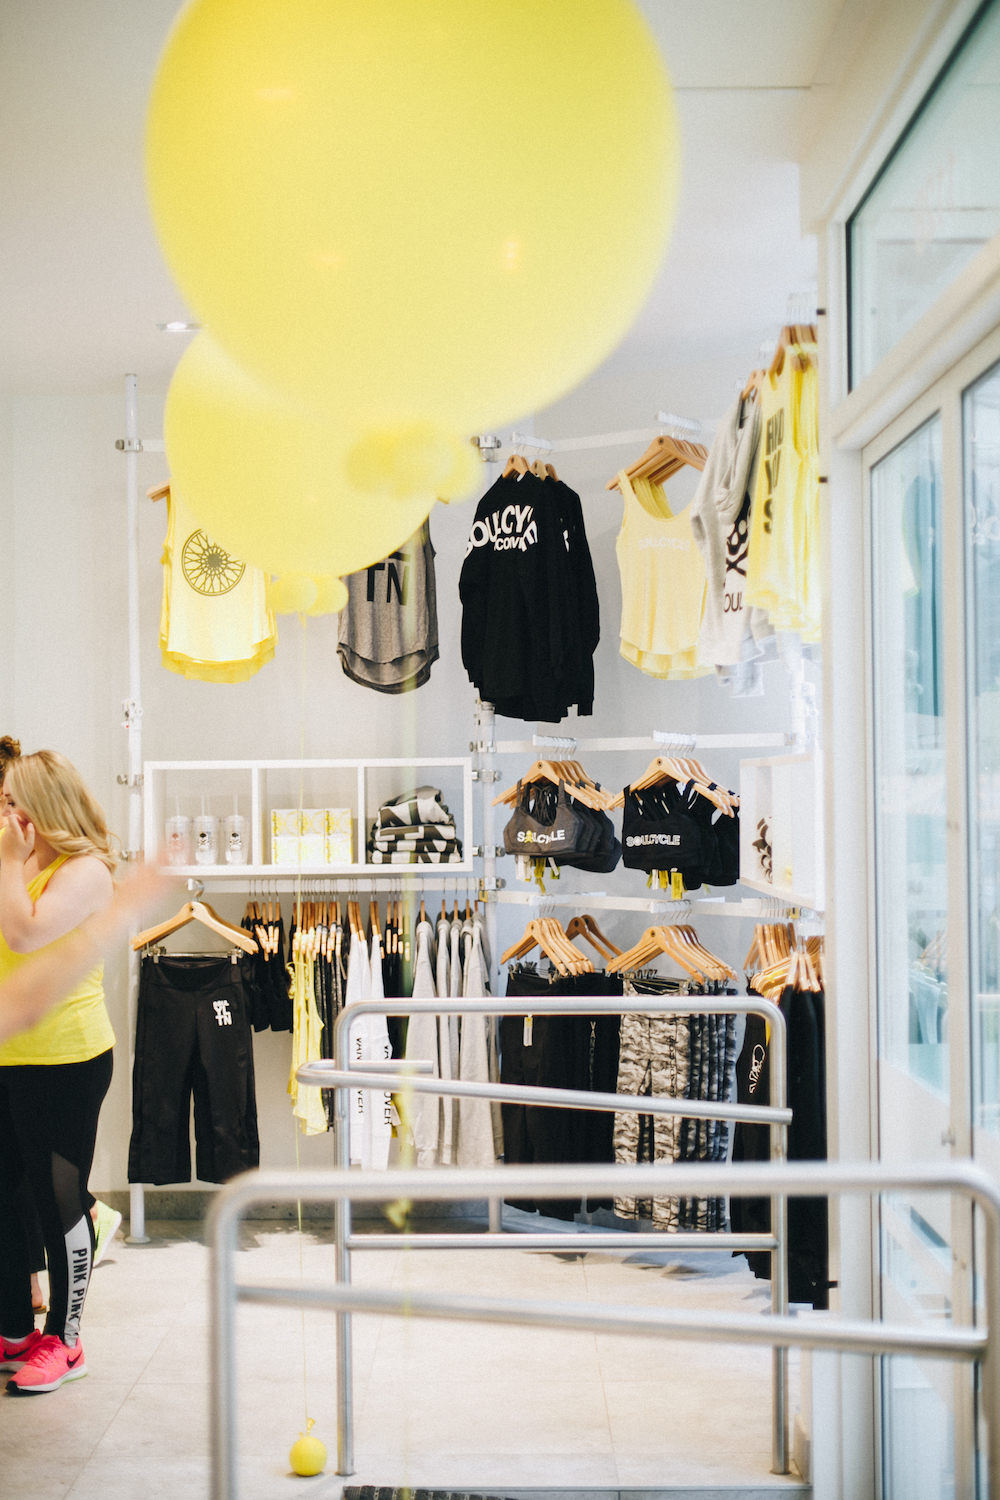 Shop for SoulCycle branded apparel in their lifestyle boutique.